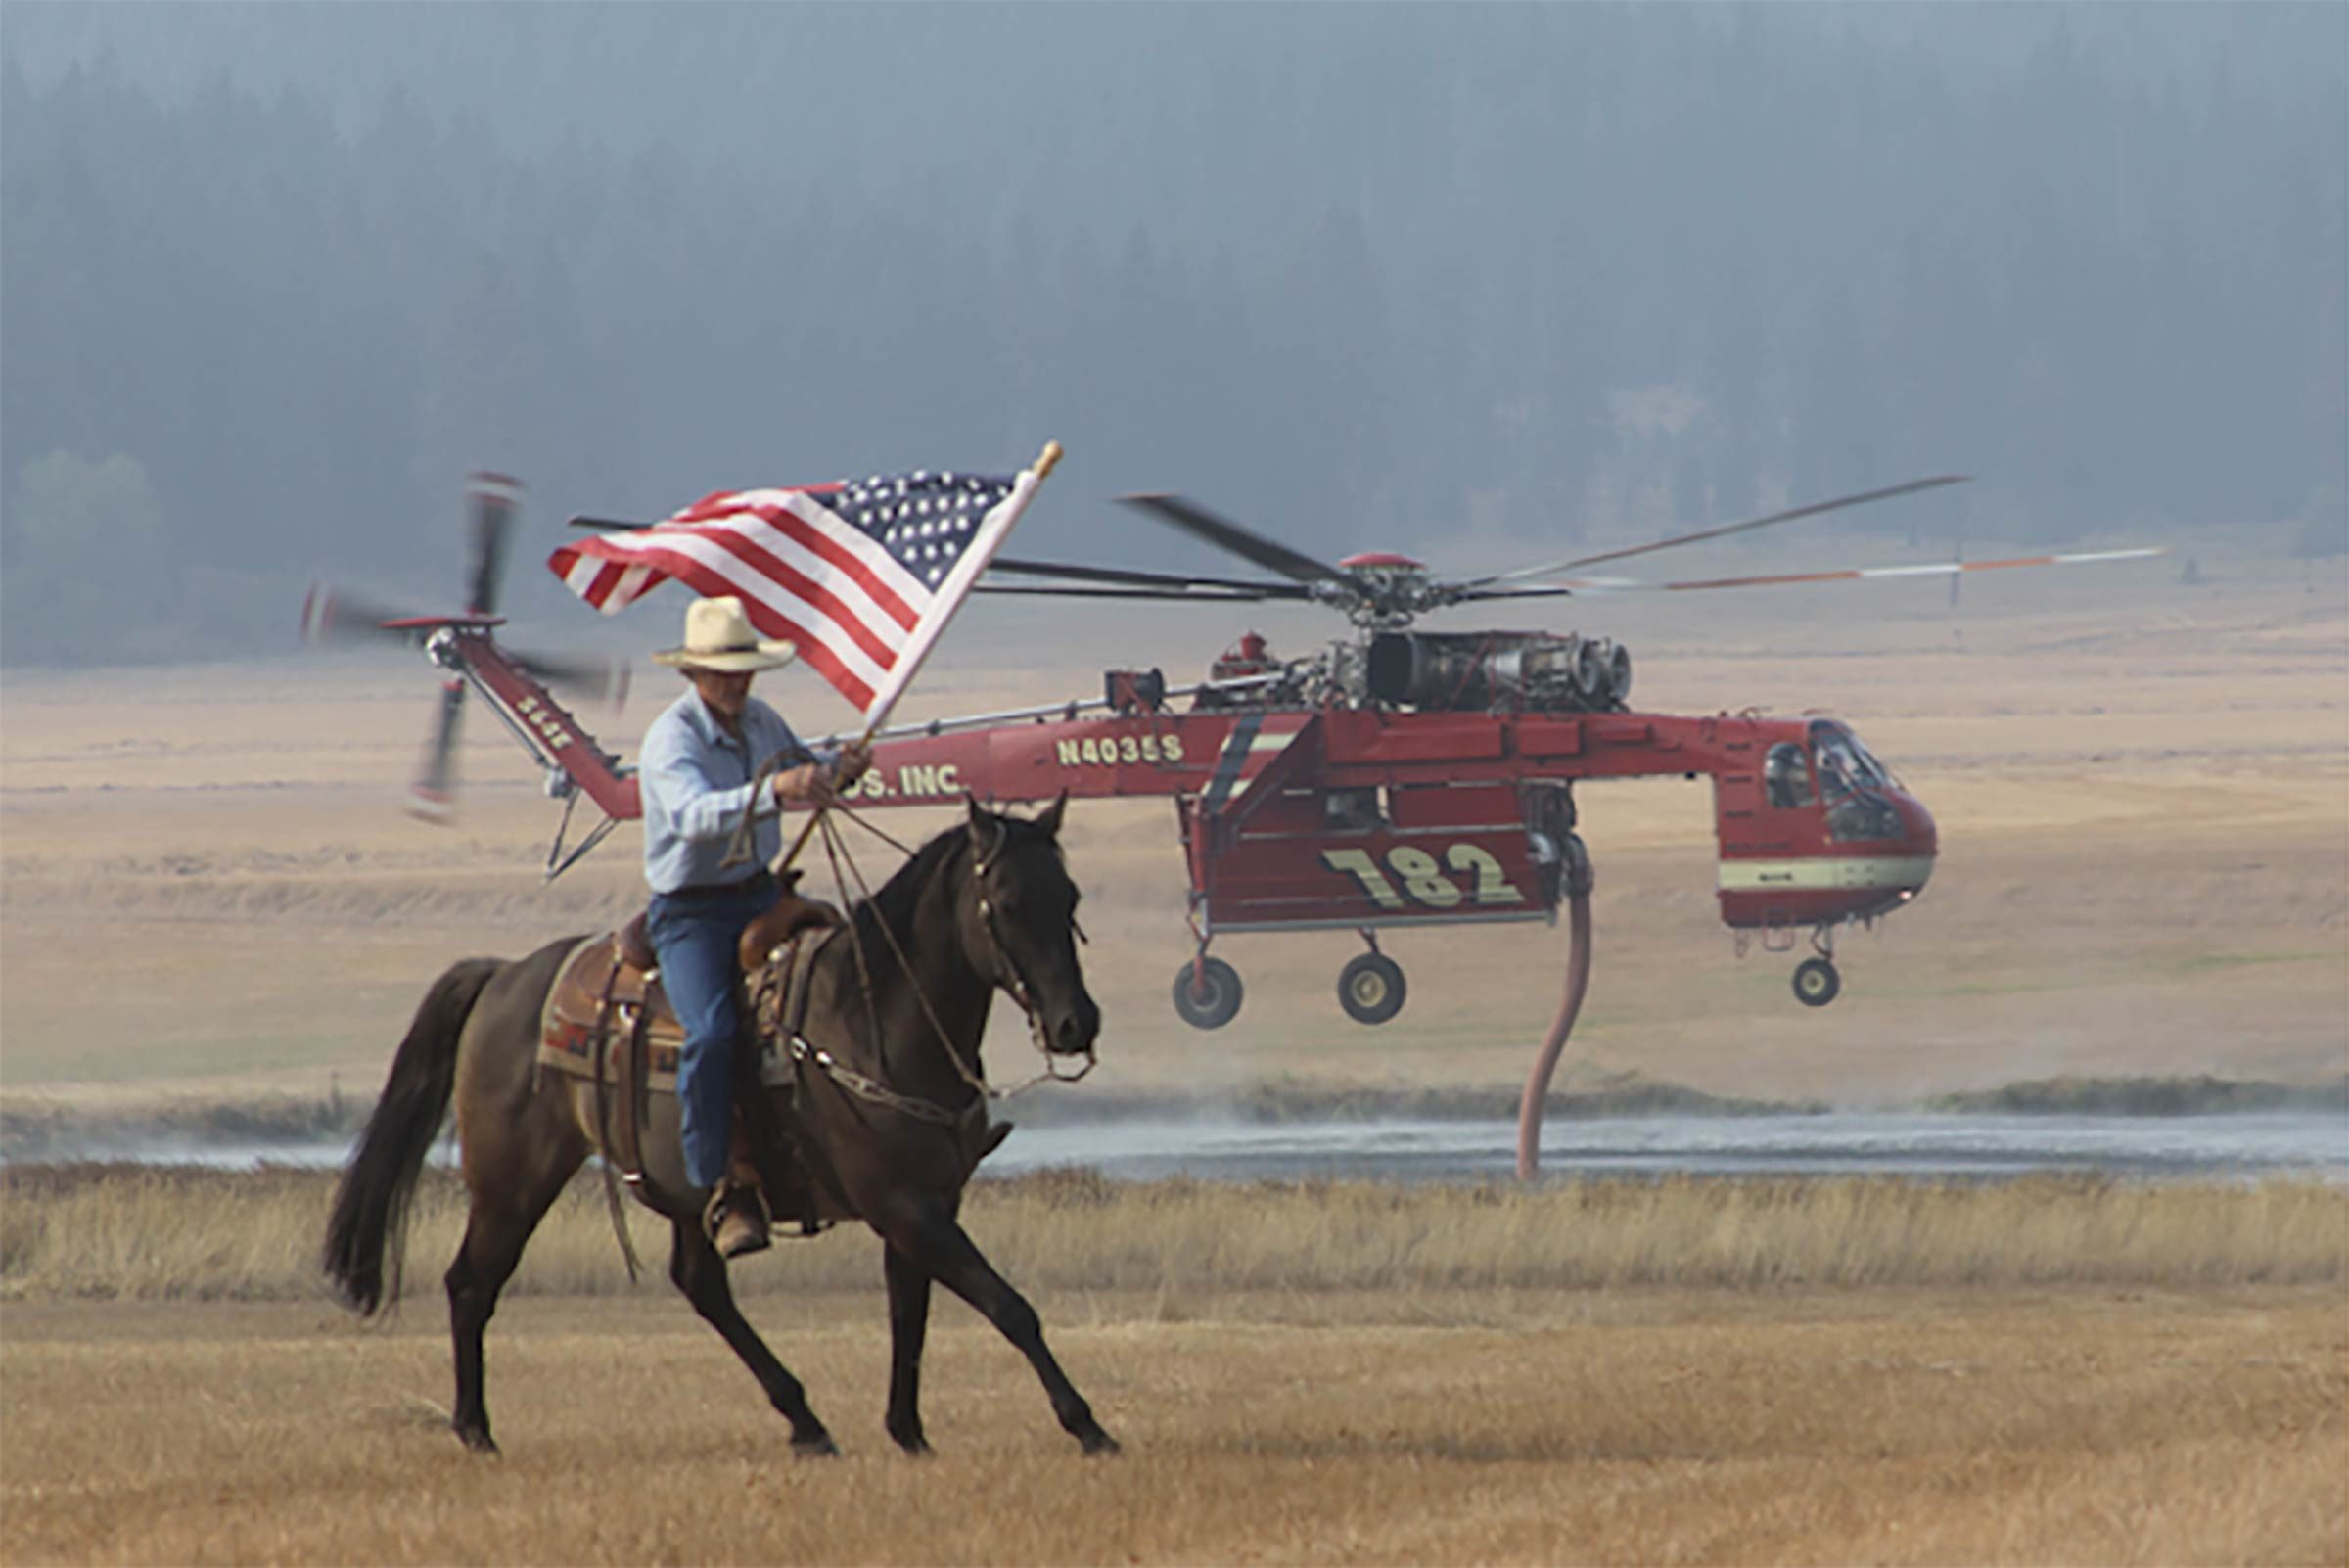 a man on a horse waves an american flag to show support for the fire department helicopter in the background